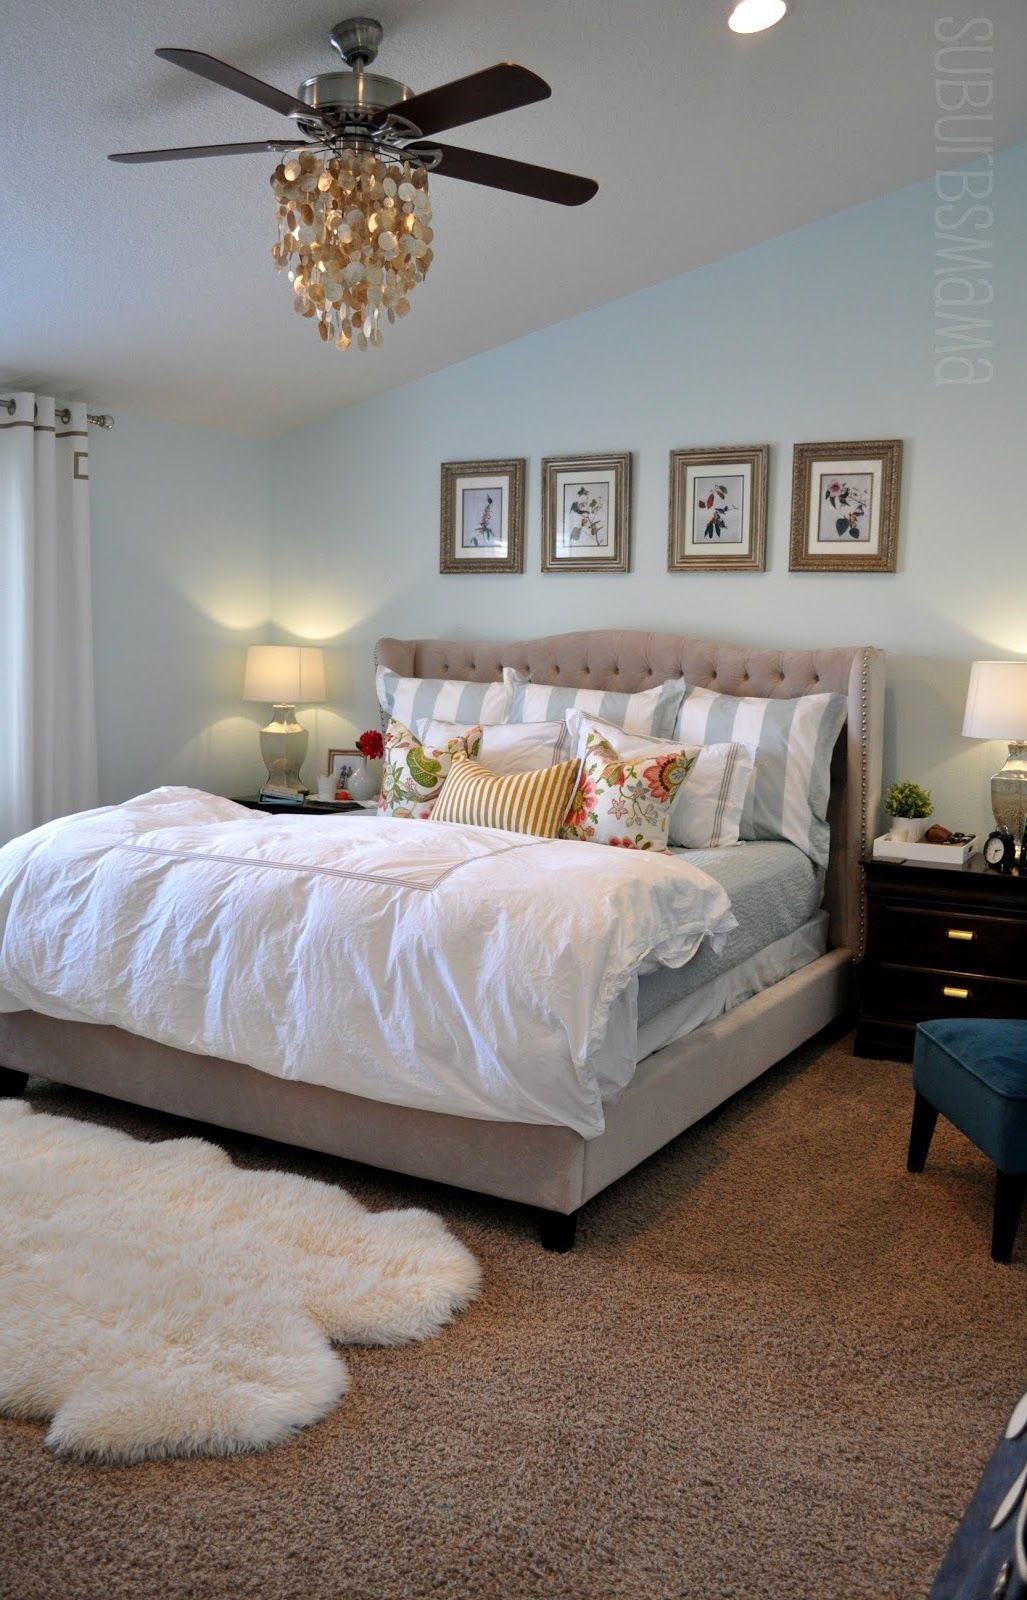 Suburbs Mama: Master Bedroom Makeover | ◘◘◘◘◘Design...Home ...